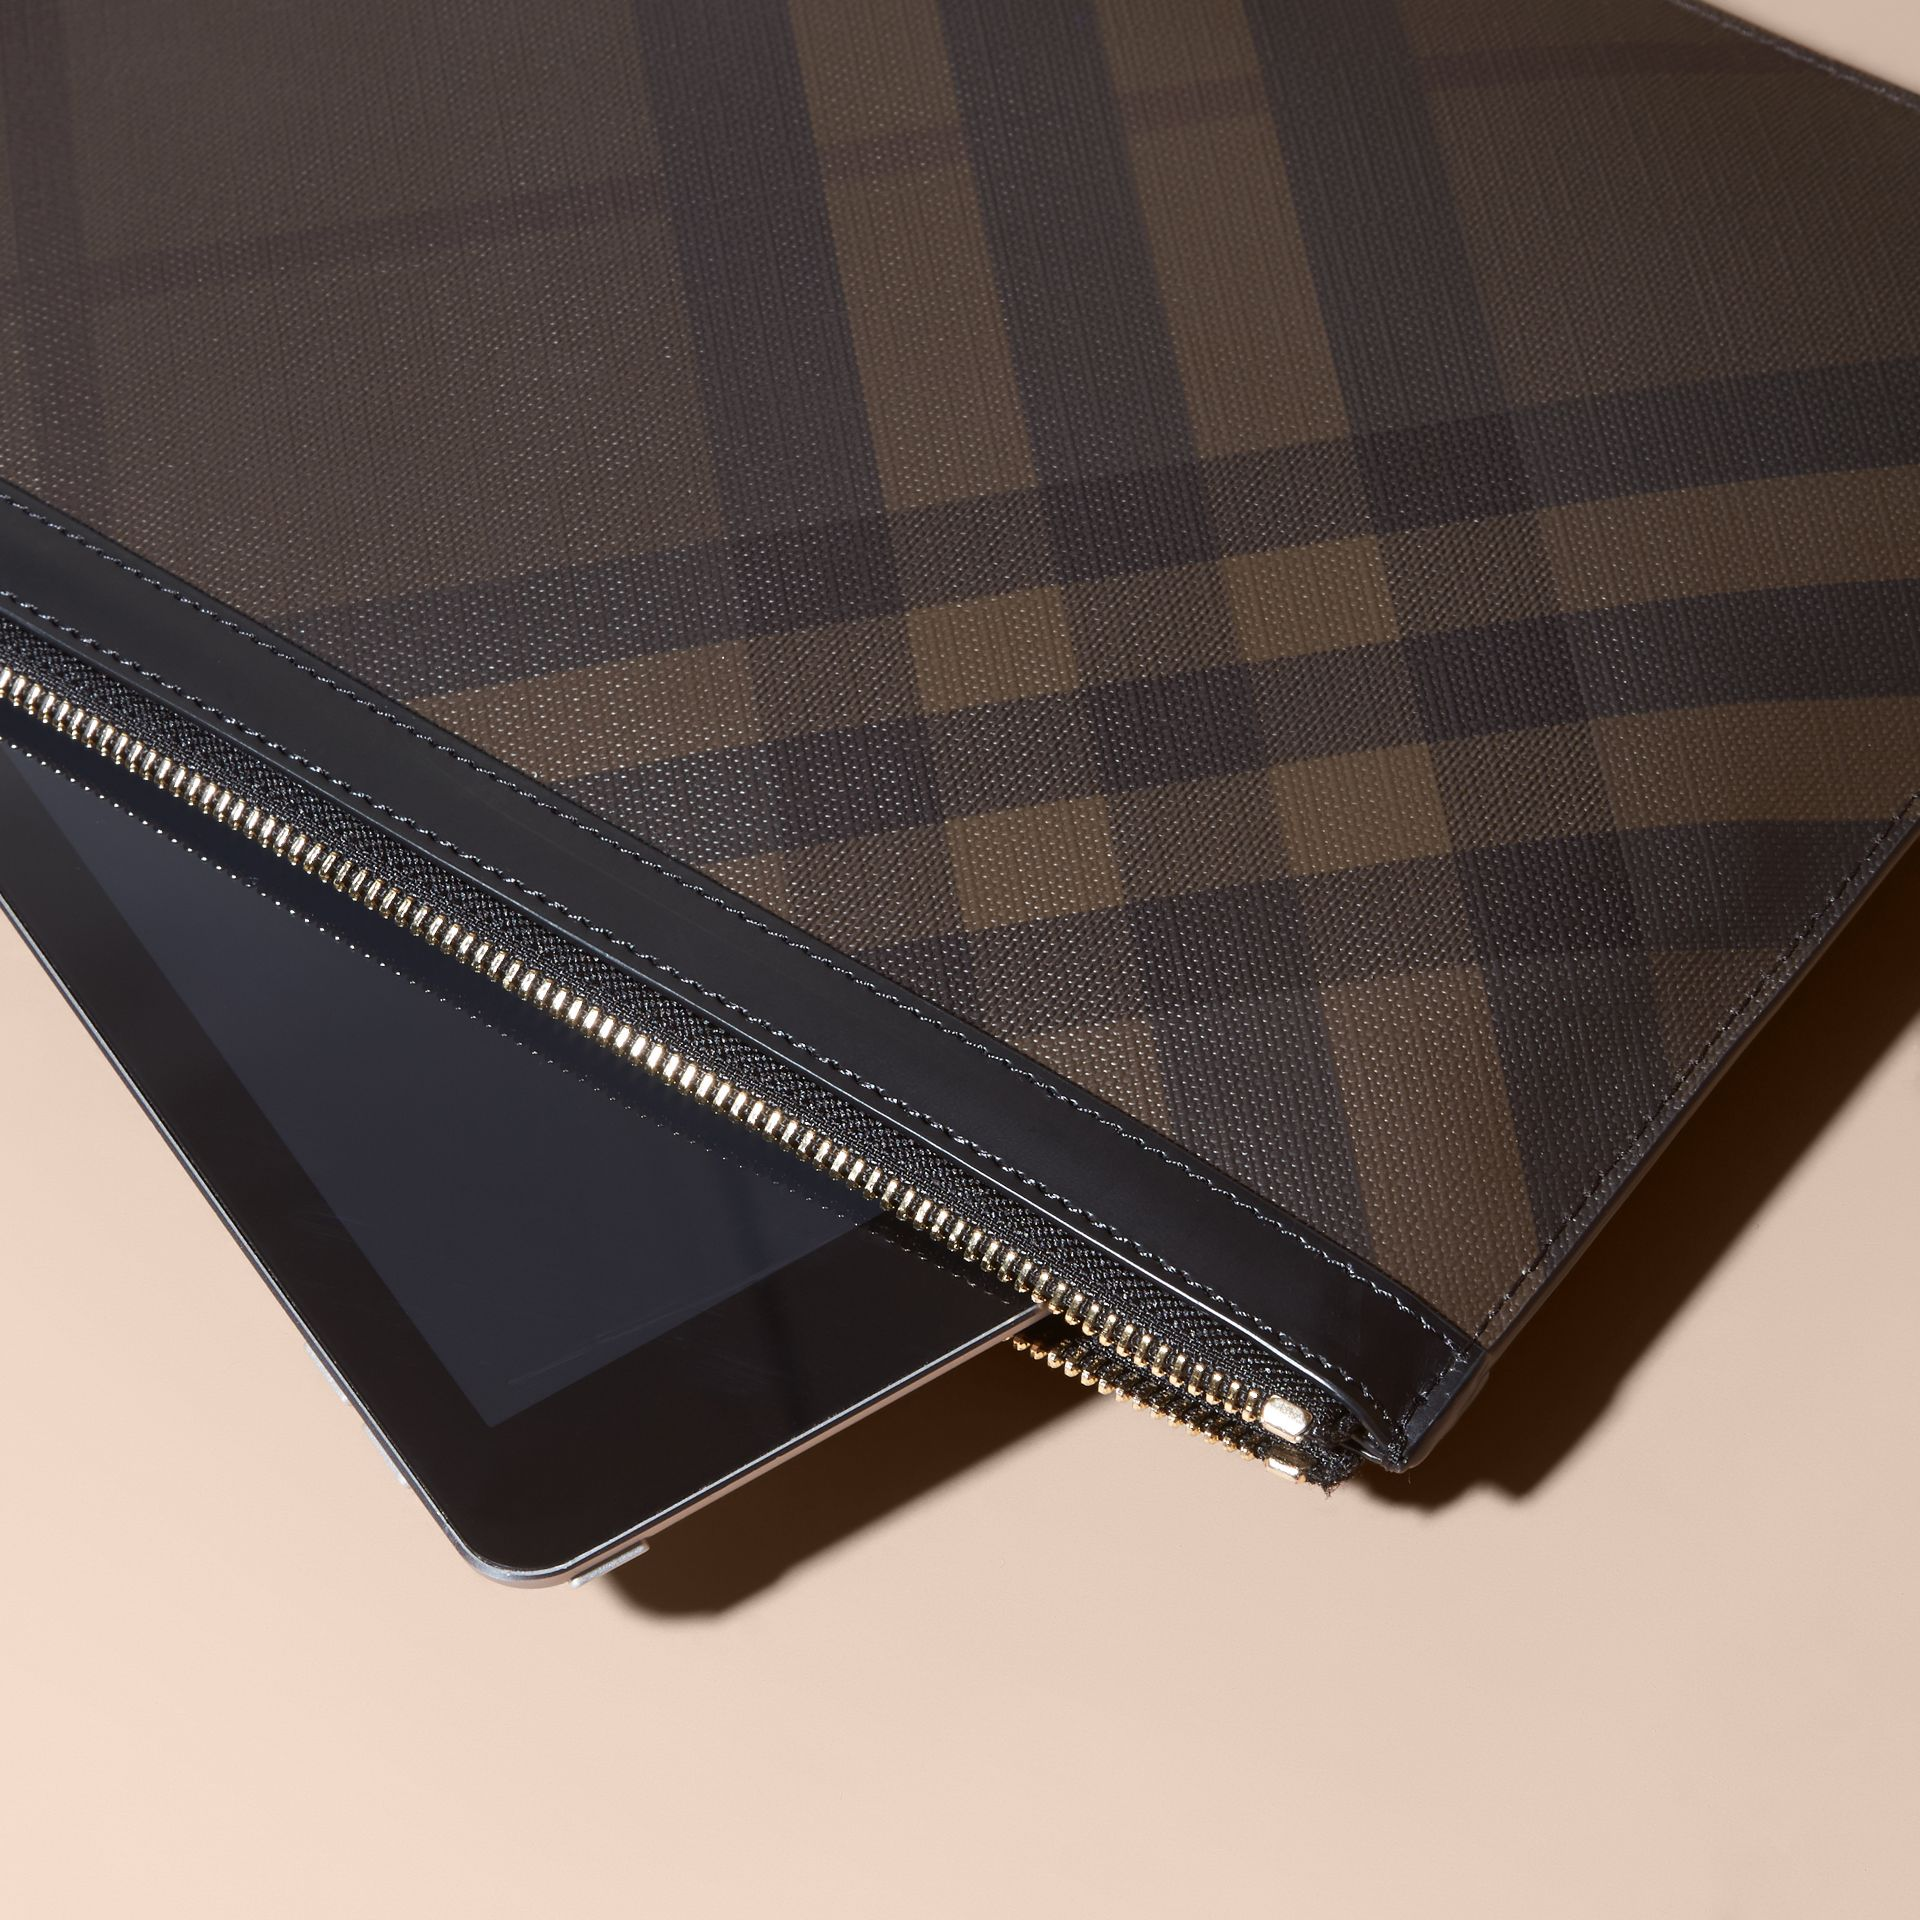 Zipped London Check Pouch in Chocolate/black - Men | Burberry - gallery image 2